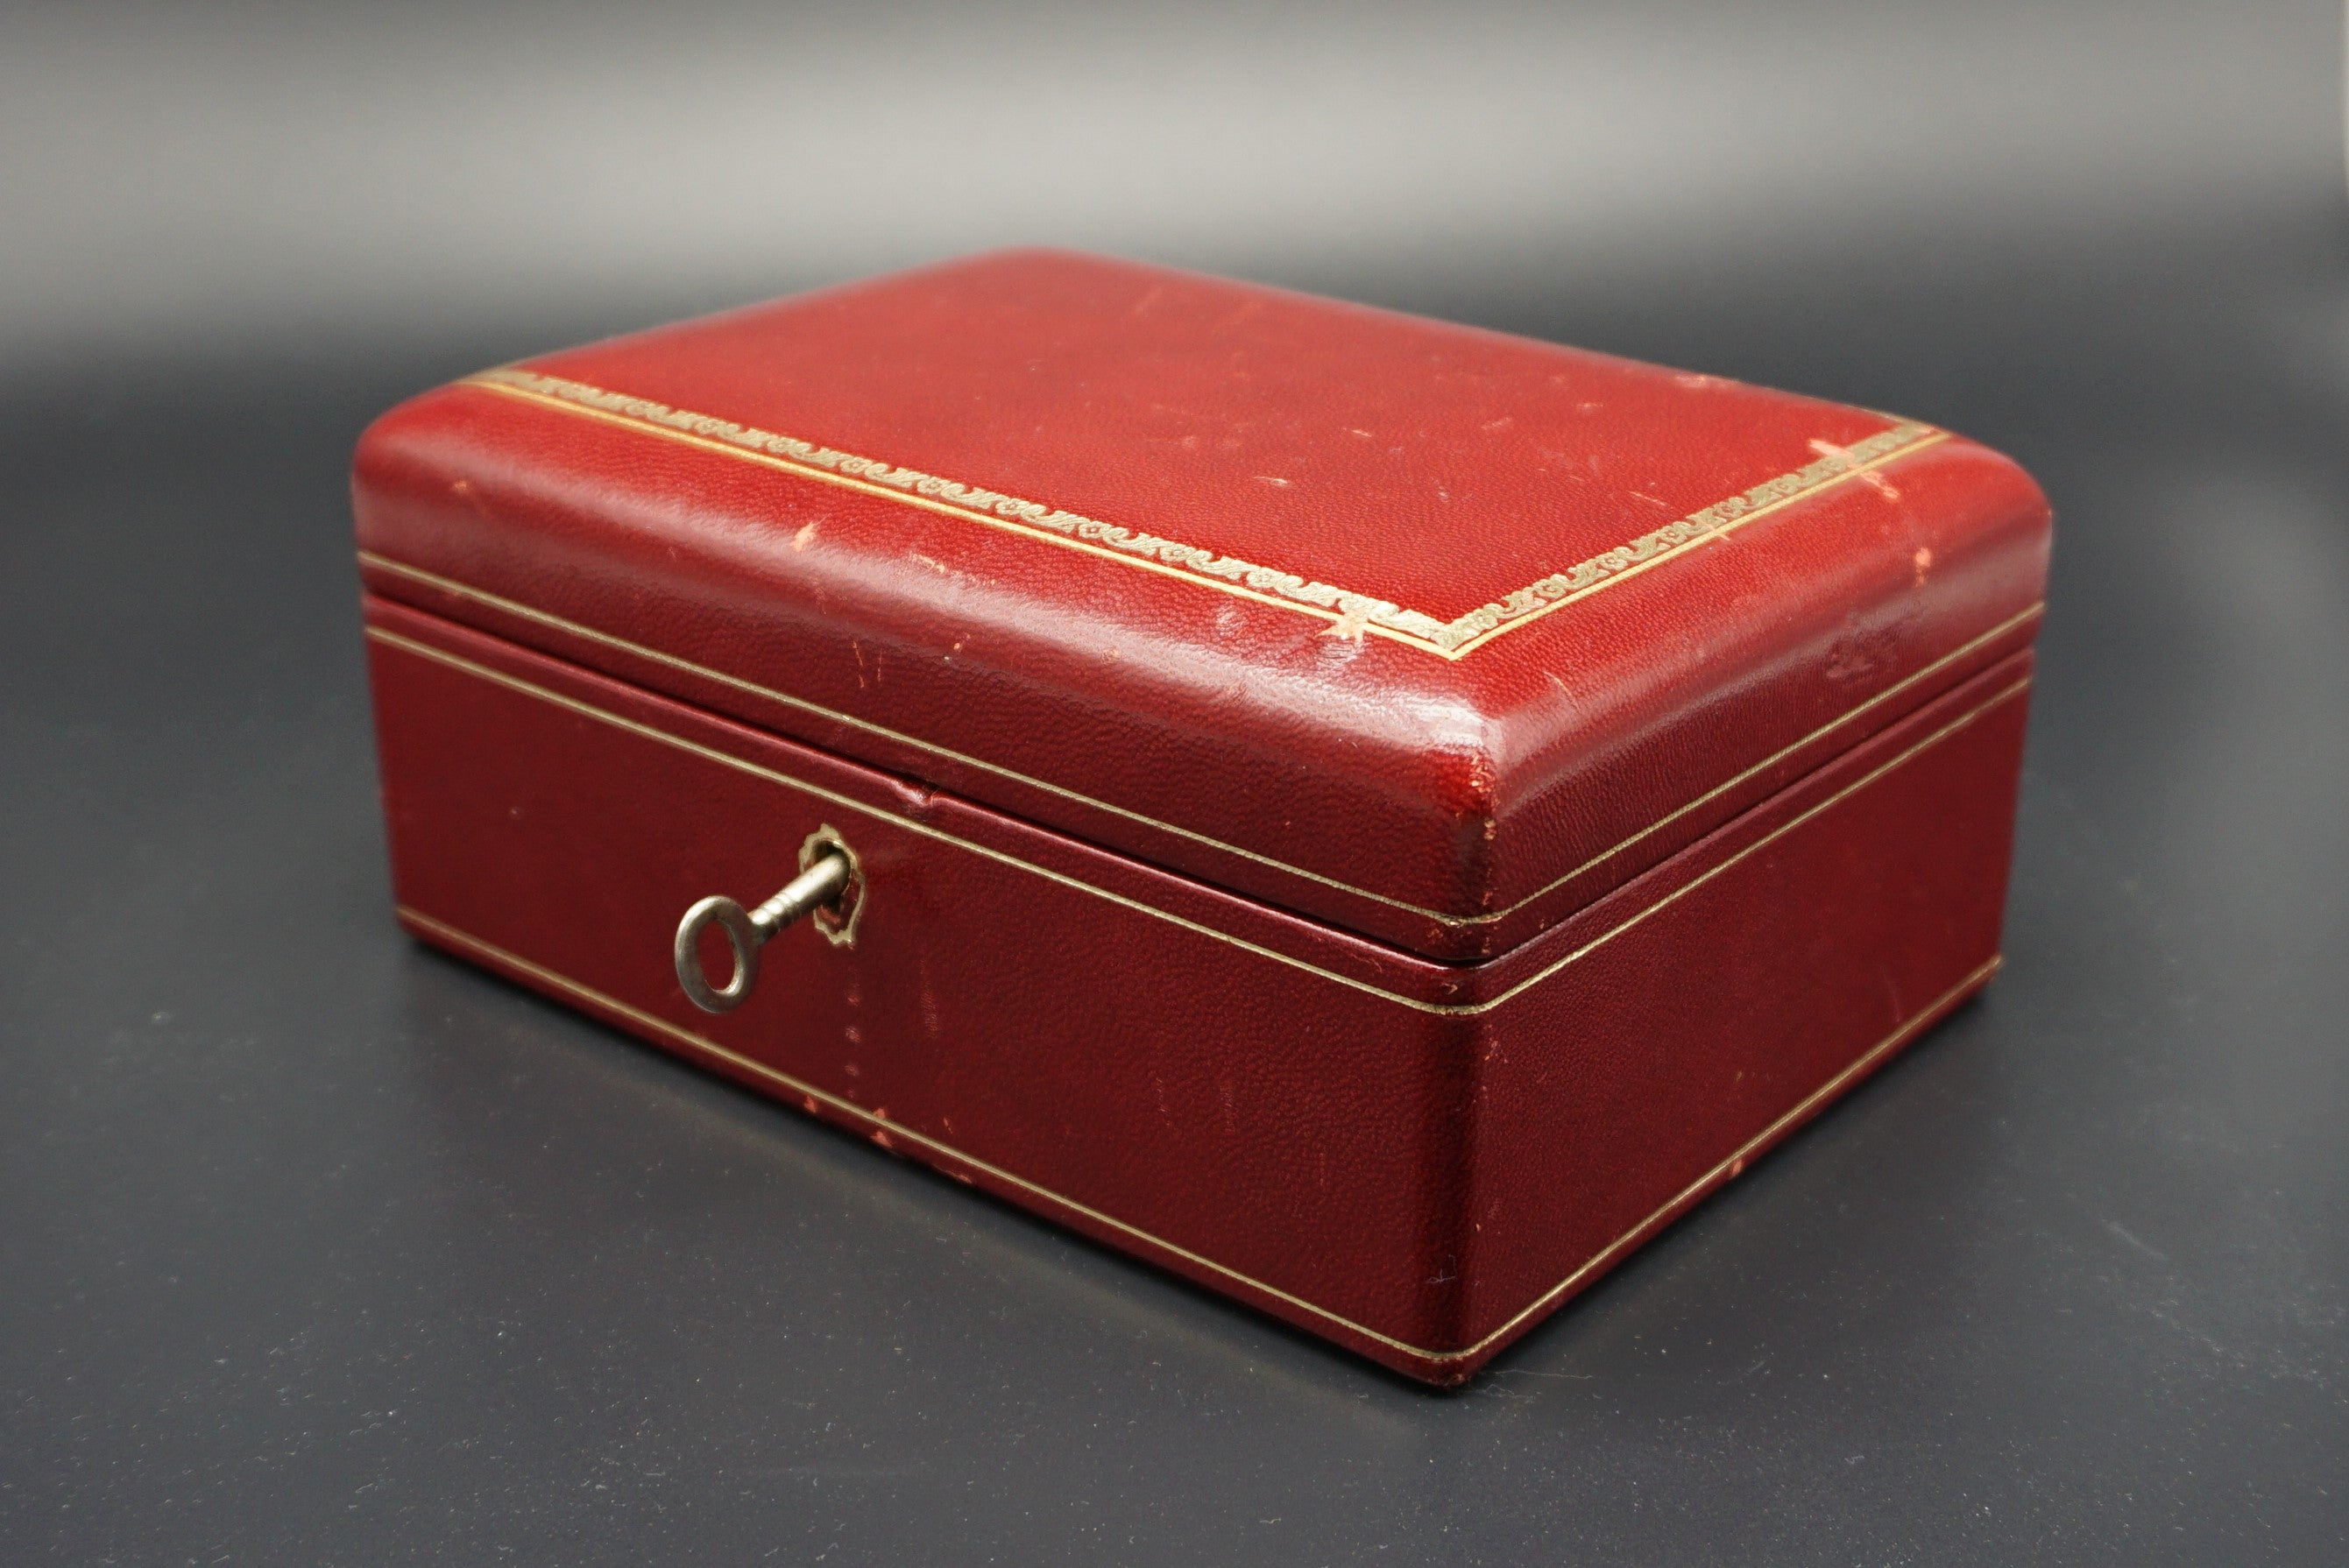 Vintage Small Red Leather Jewelry Box with Removable Tray REBUS 33